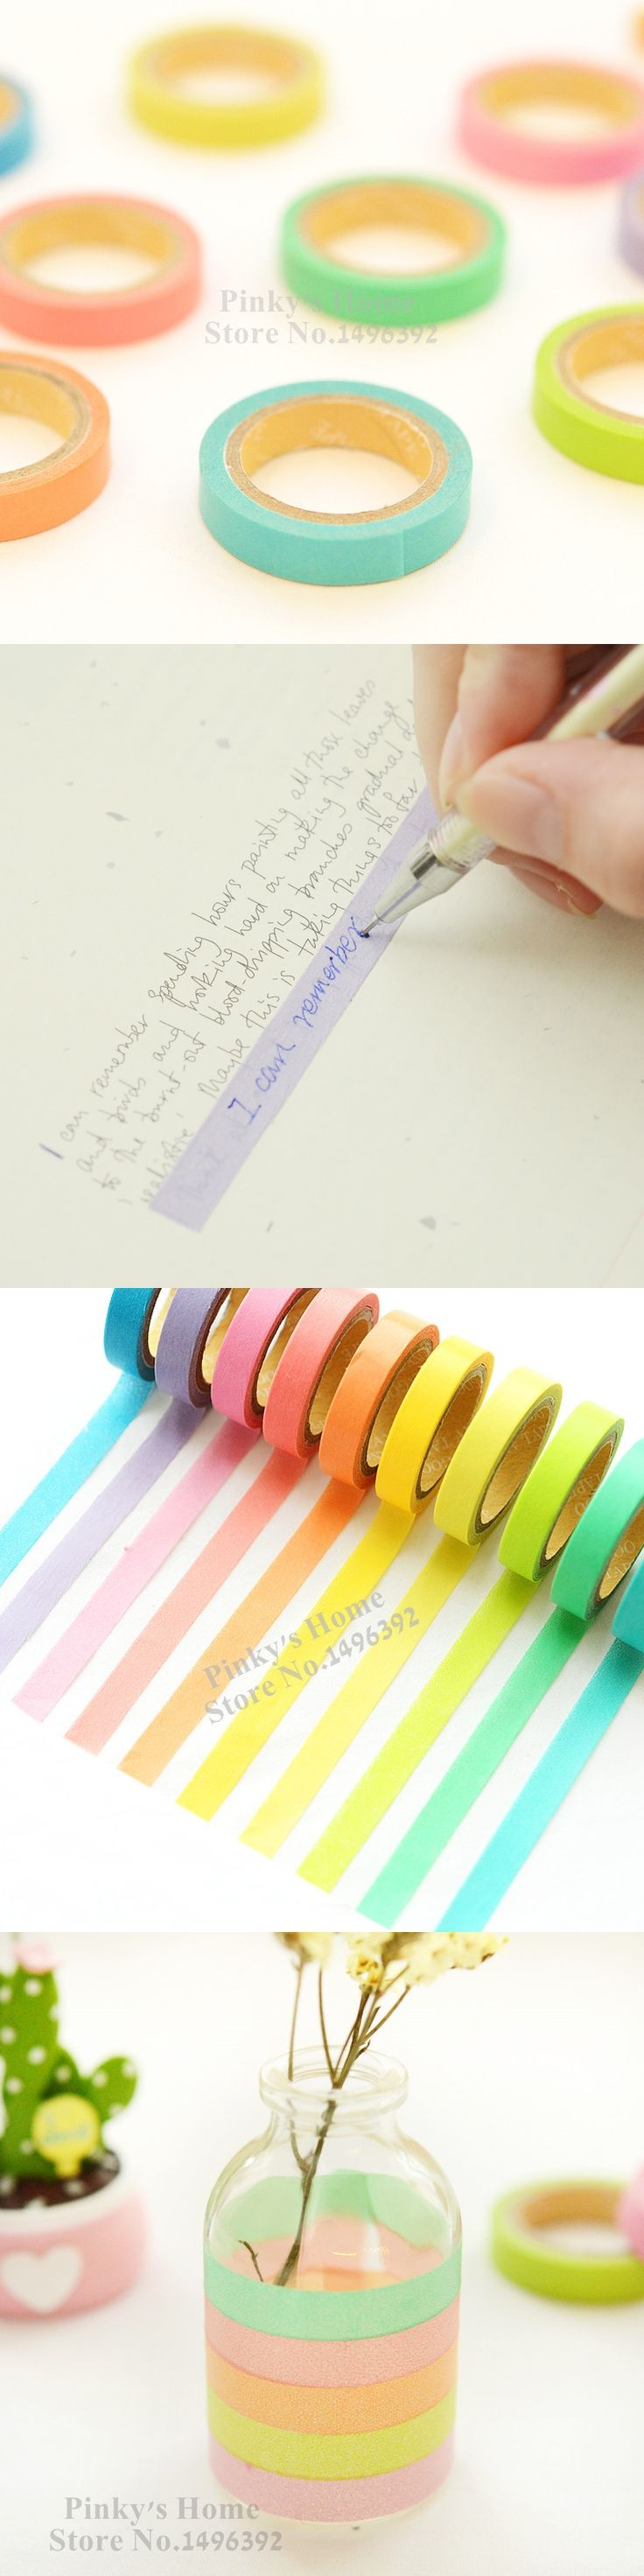 DIY Rainbow Washi Sticky Paper Masking Adhesive Tape Writing Dentelle Scrapbooking Masking Tape Lot